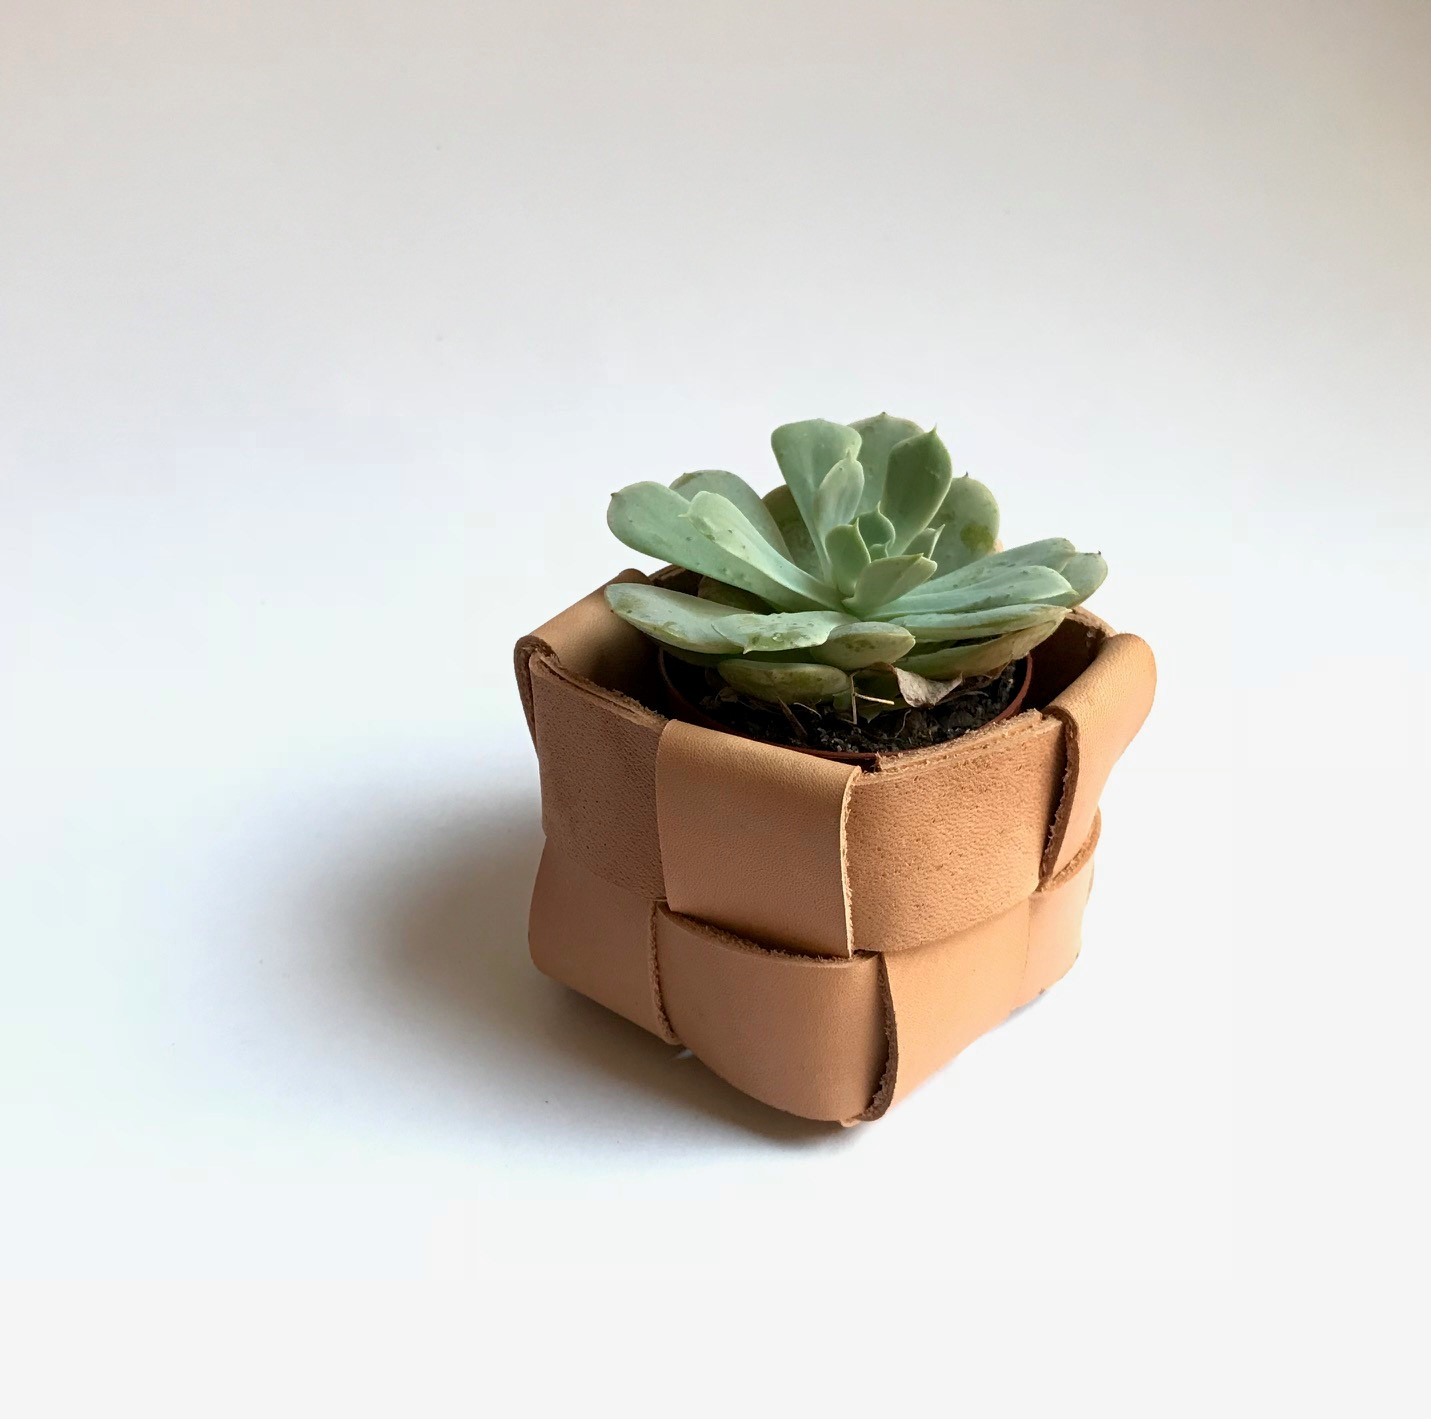 My product photography after implementing 3 simple steps